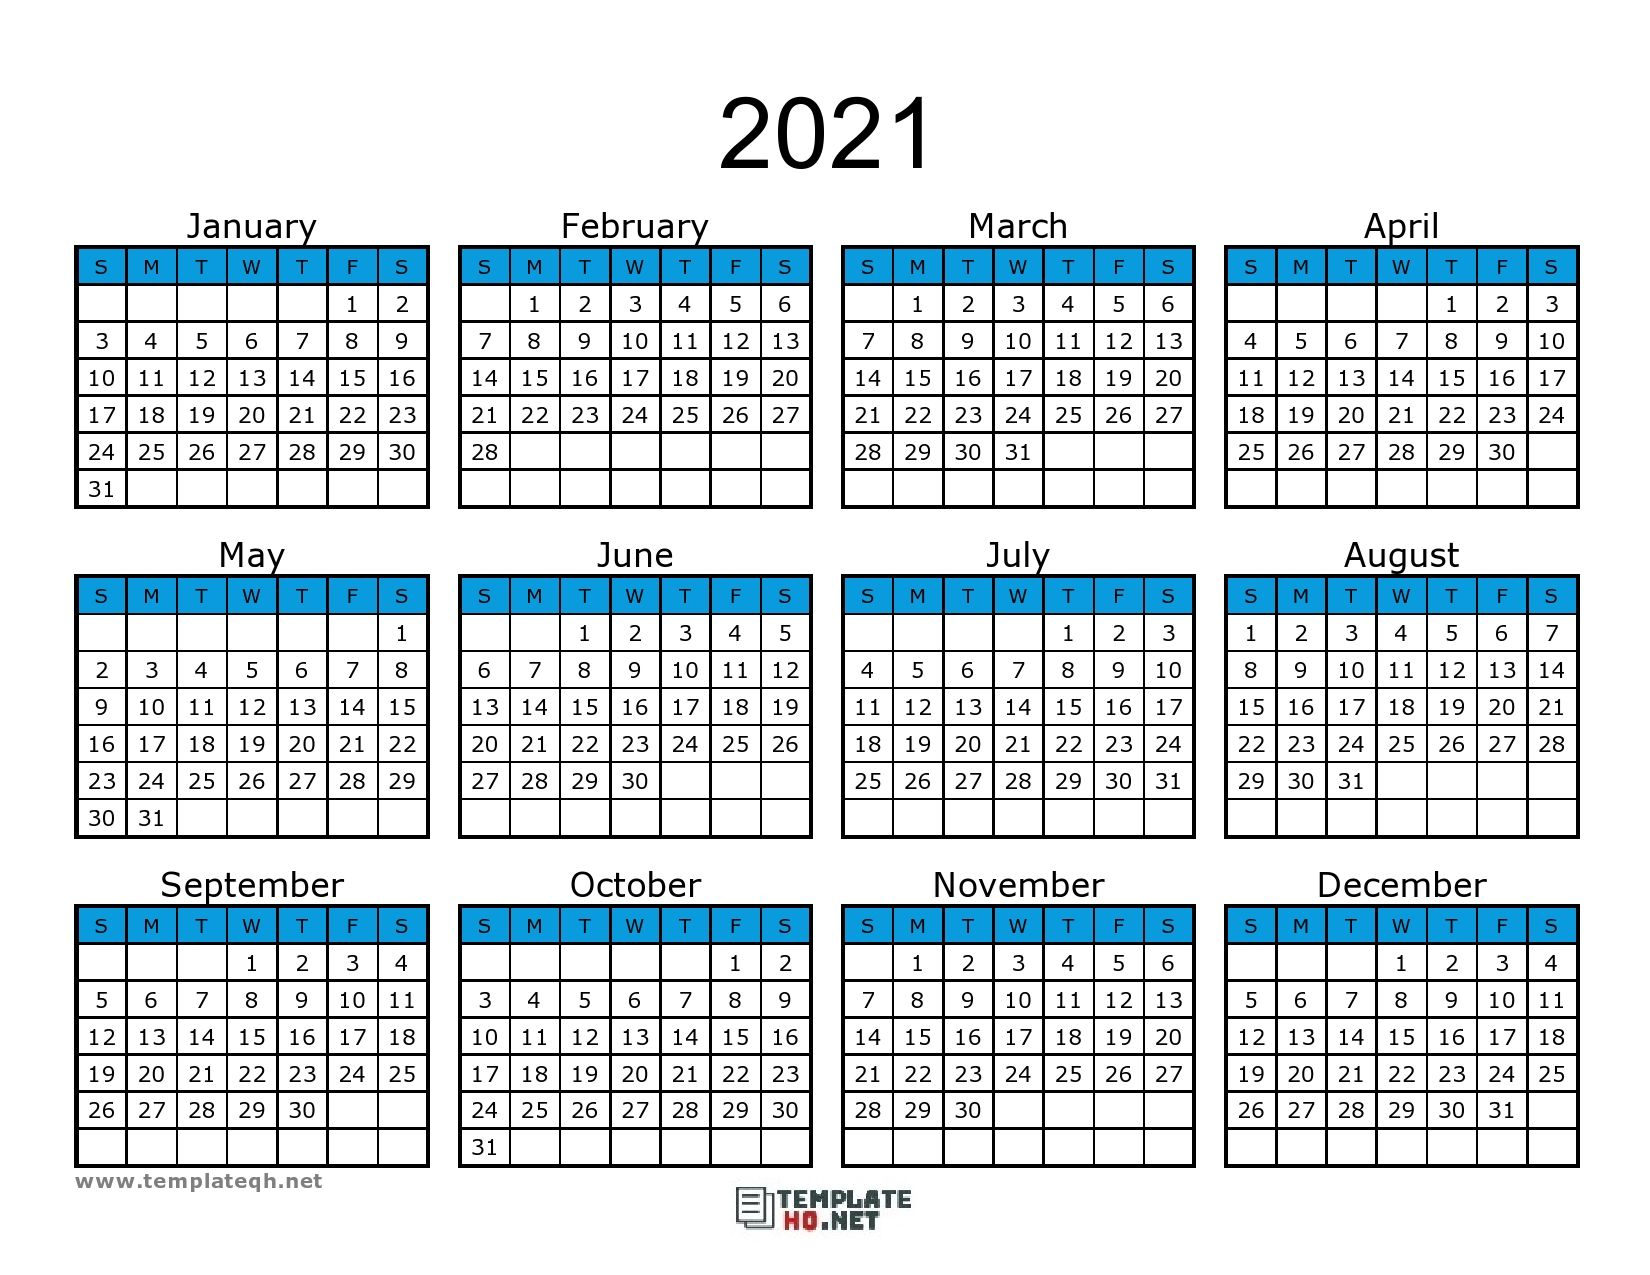 Are You Searching For 2021 Calendar Printable? You Come To inside Waterproof Calendar 2021